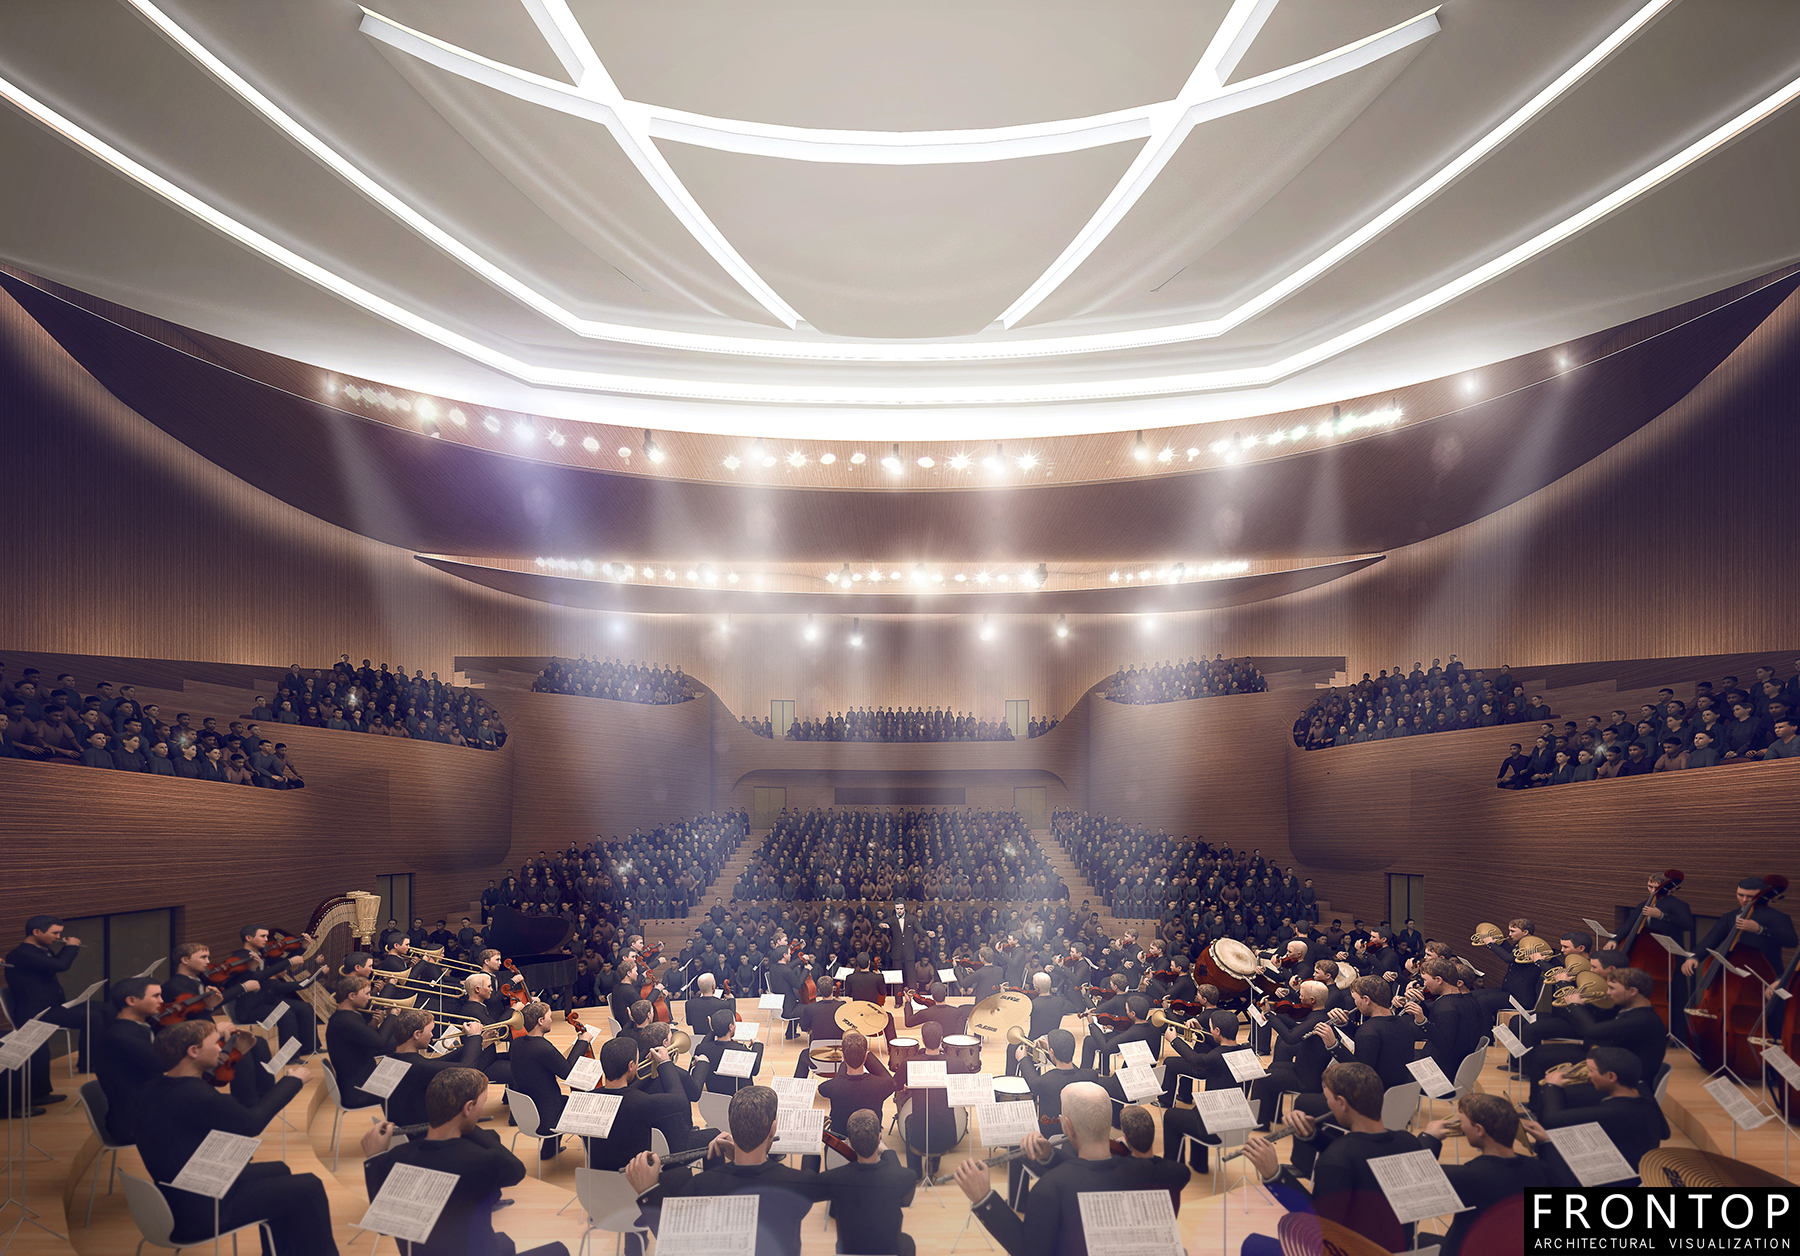 factory Outlets for 3d Visualization 3d Rendering Interior And Exterior - Luoyang Grand Theatre and Hall of Fame – Frontop